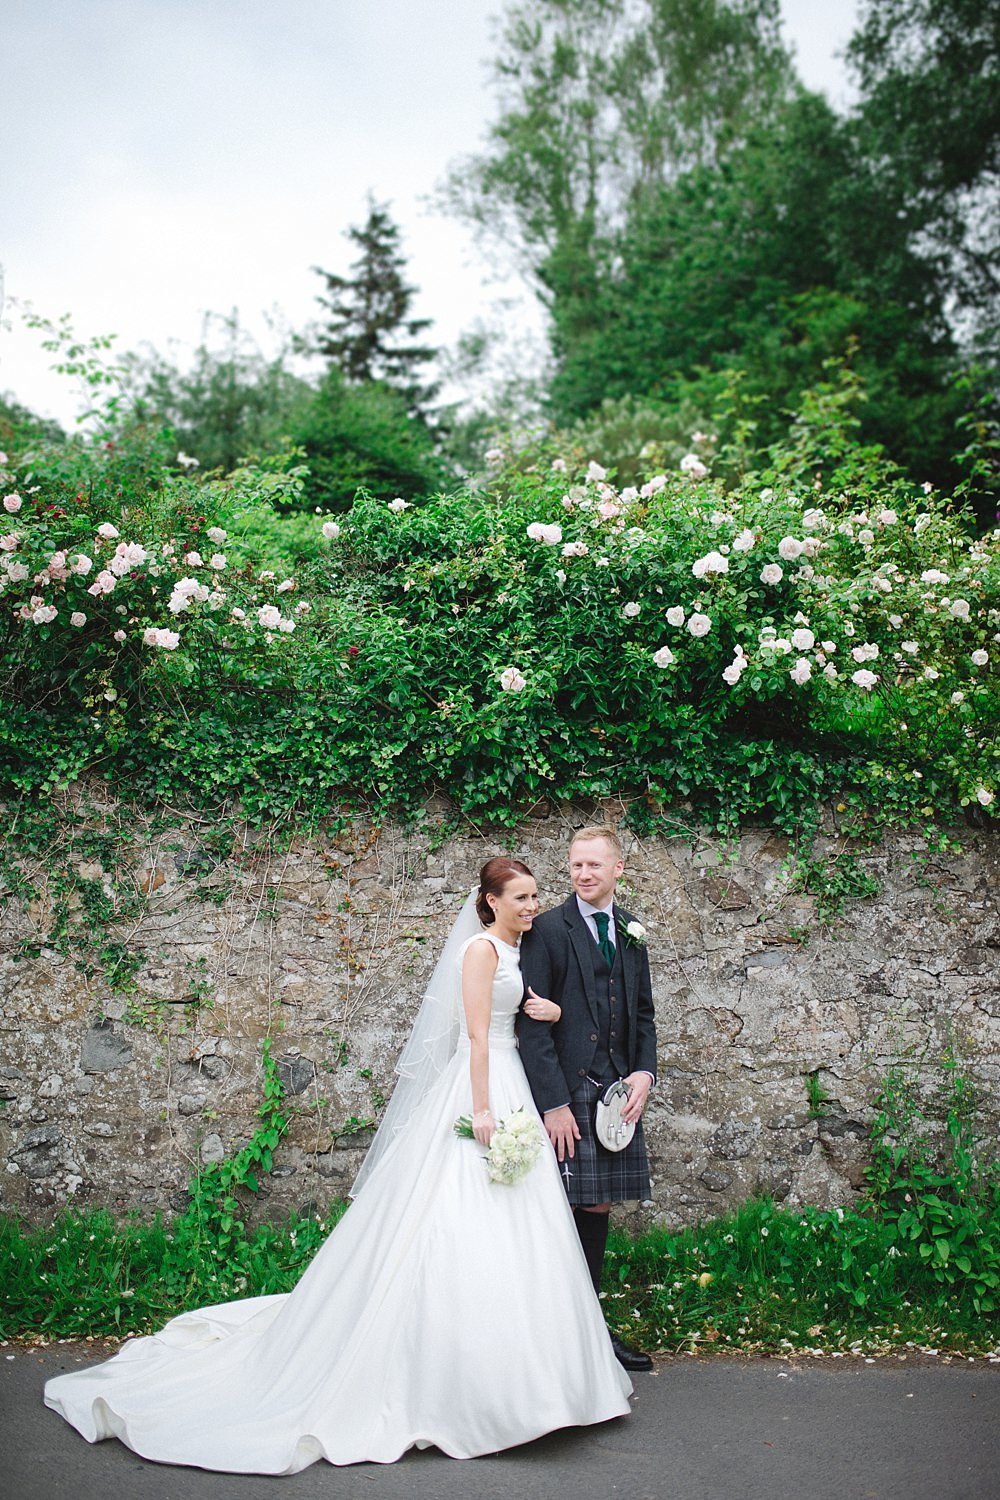 Chantal Lachance-Gibson Photography /destination wedding photographers,The Gibson